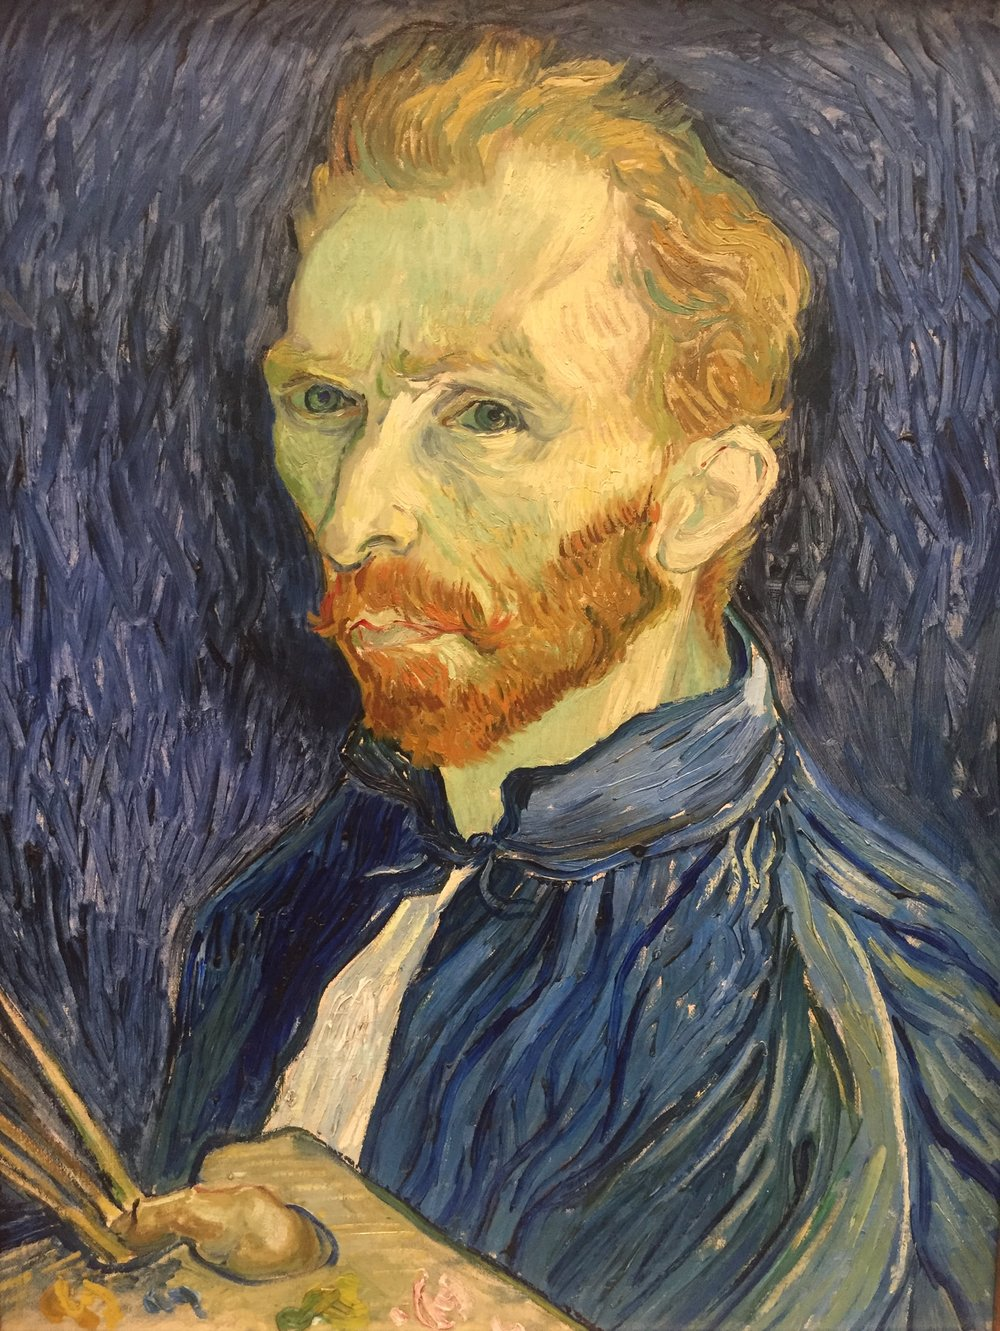 van gogh self portrait national gallery washington dc.jpg